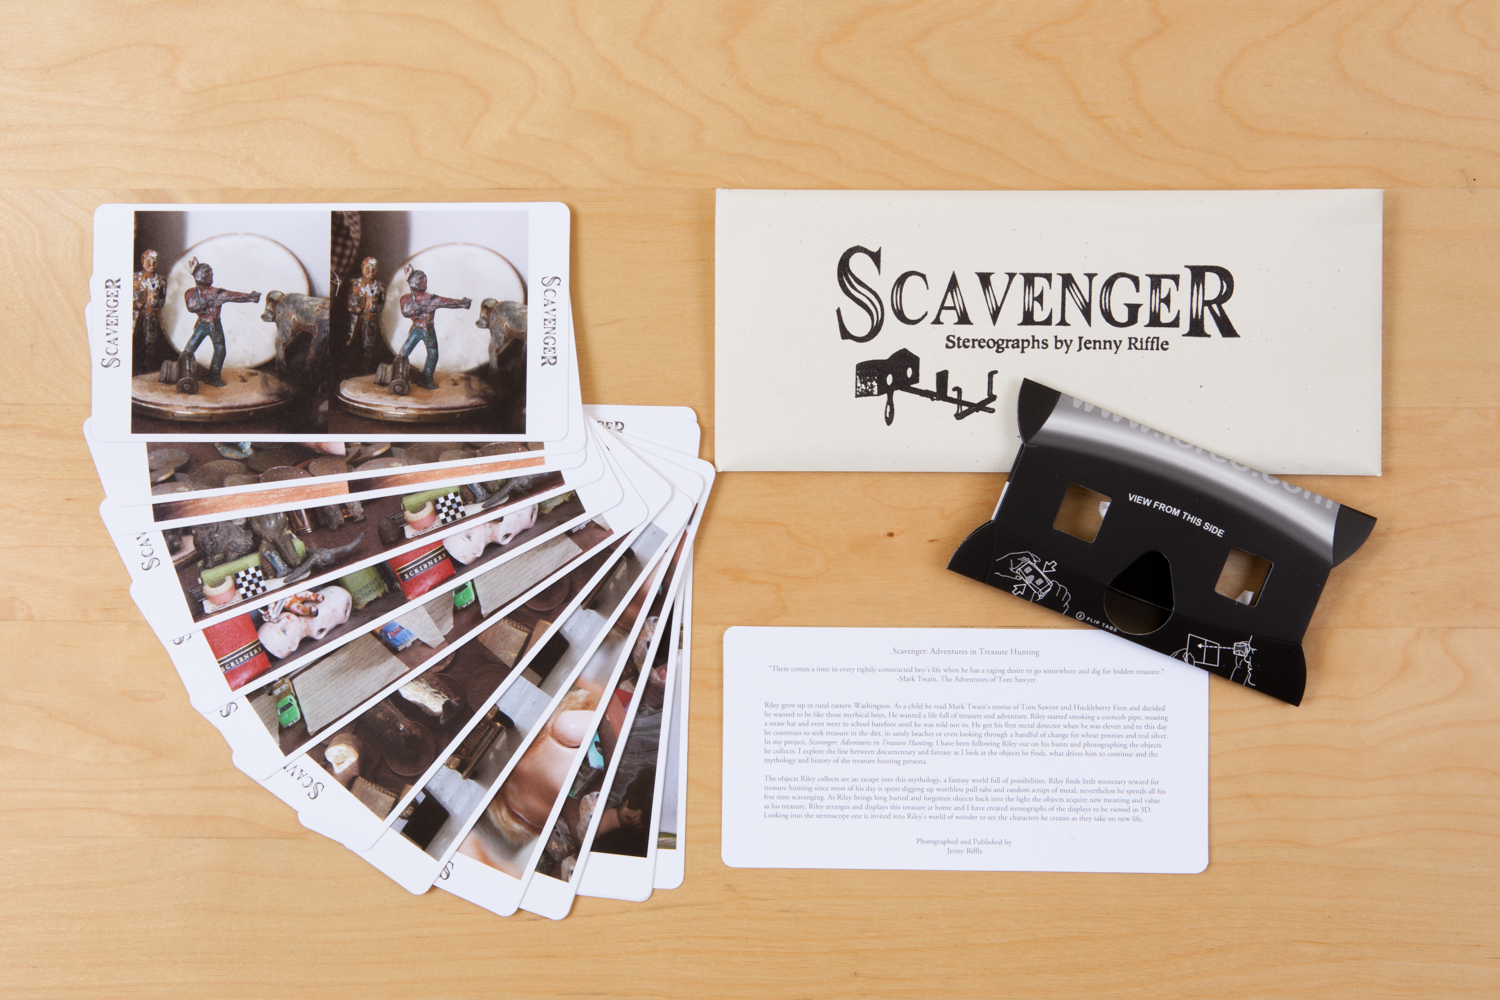 Scavenger: Adventures In Treasure Hunting  by Jenny Riffle